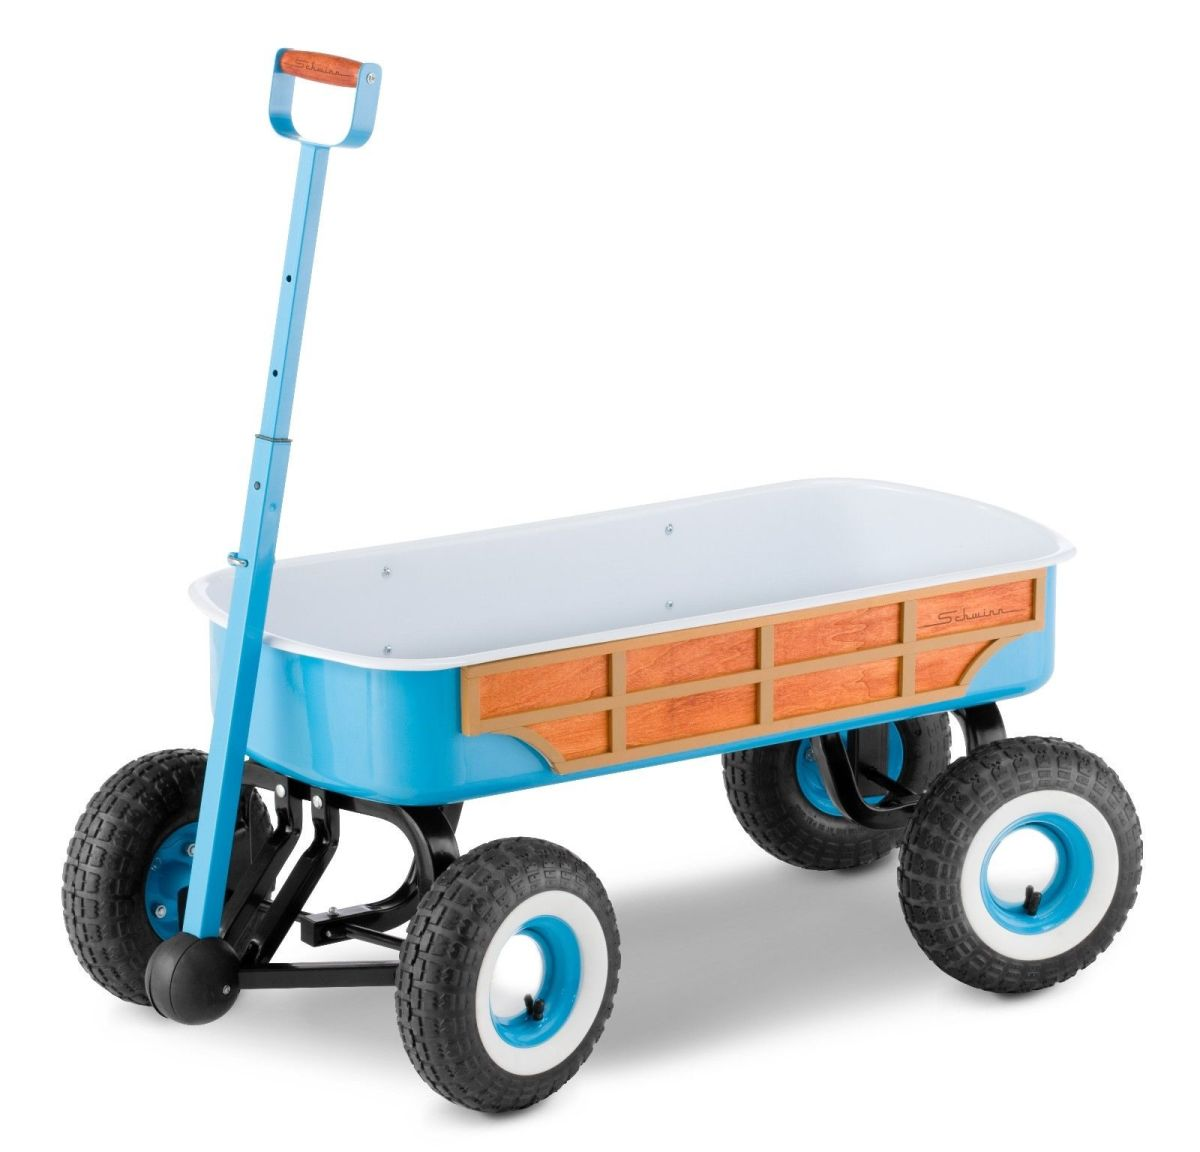 Woody Wagon by Schwinn is now $45